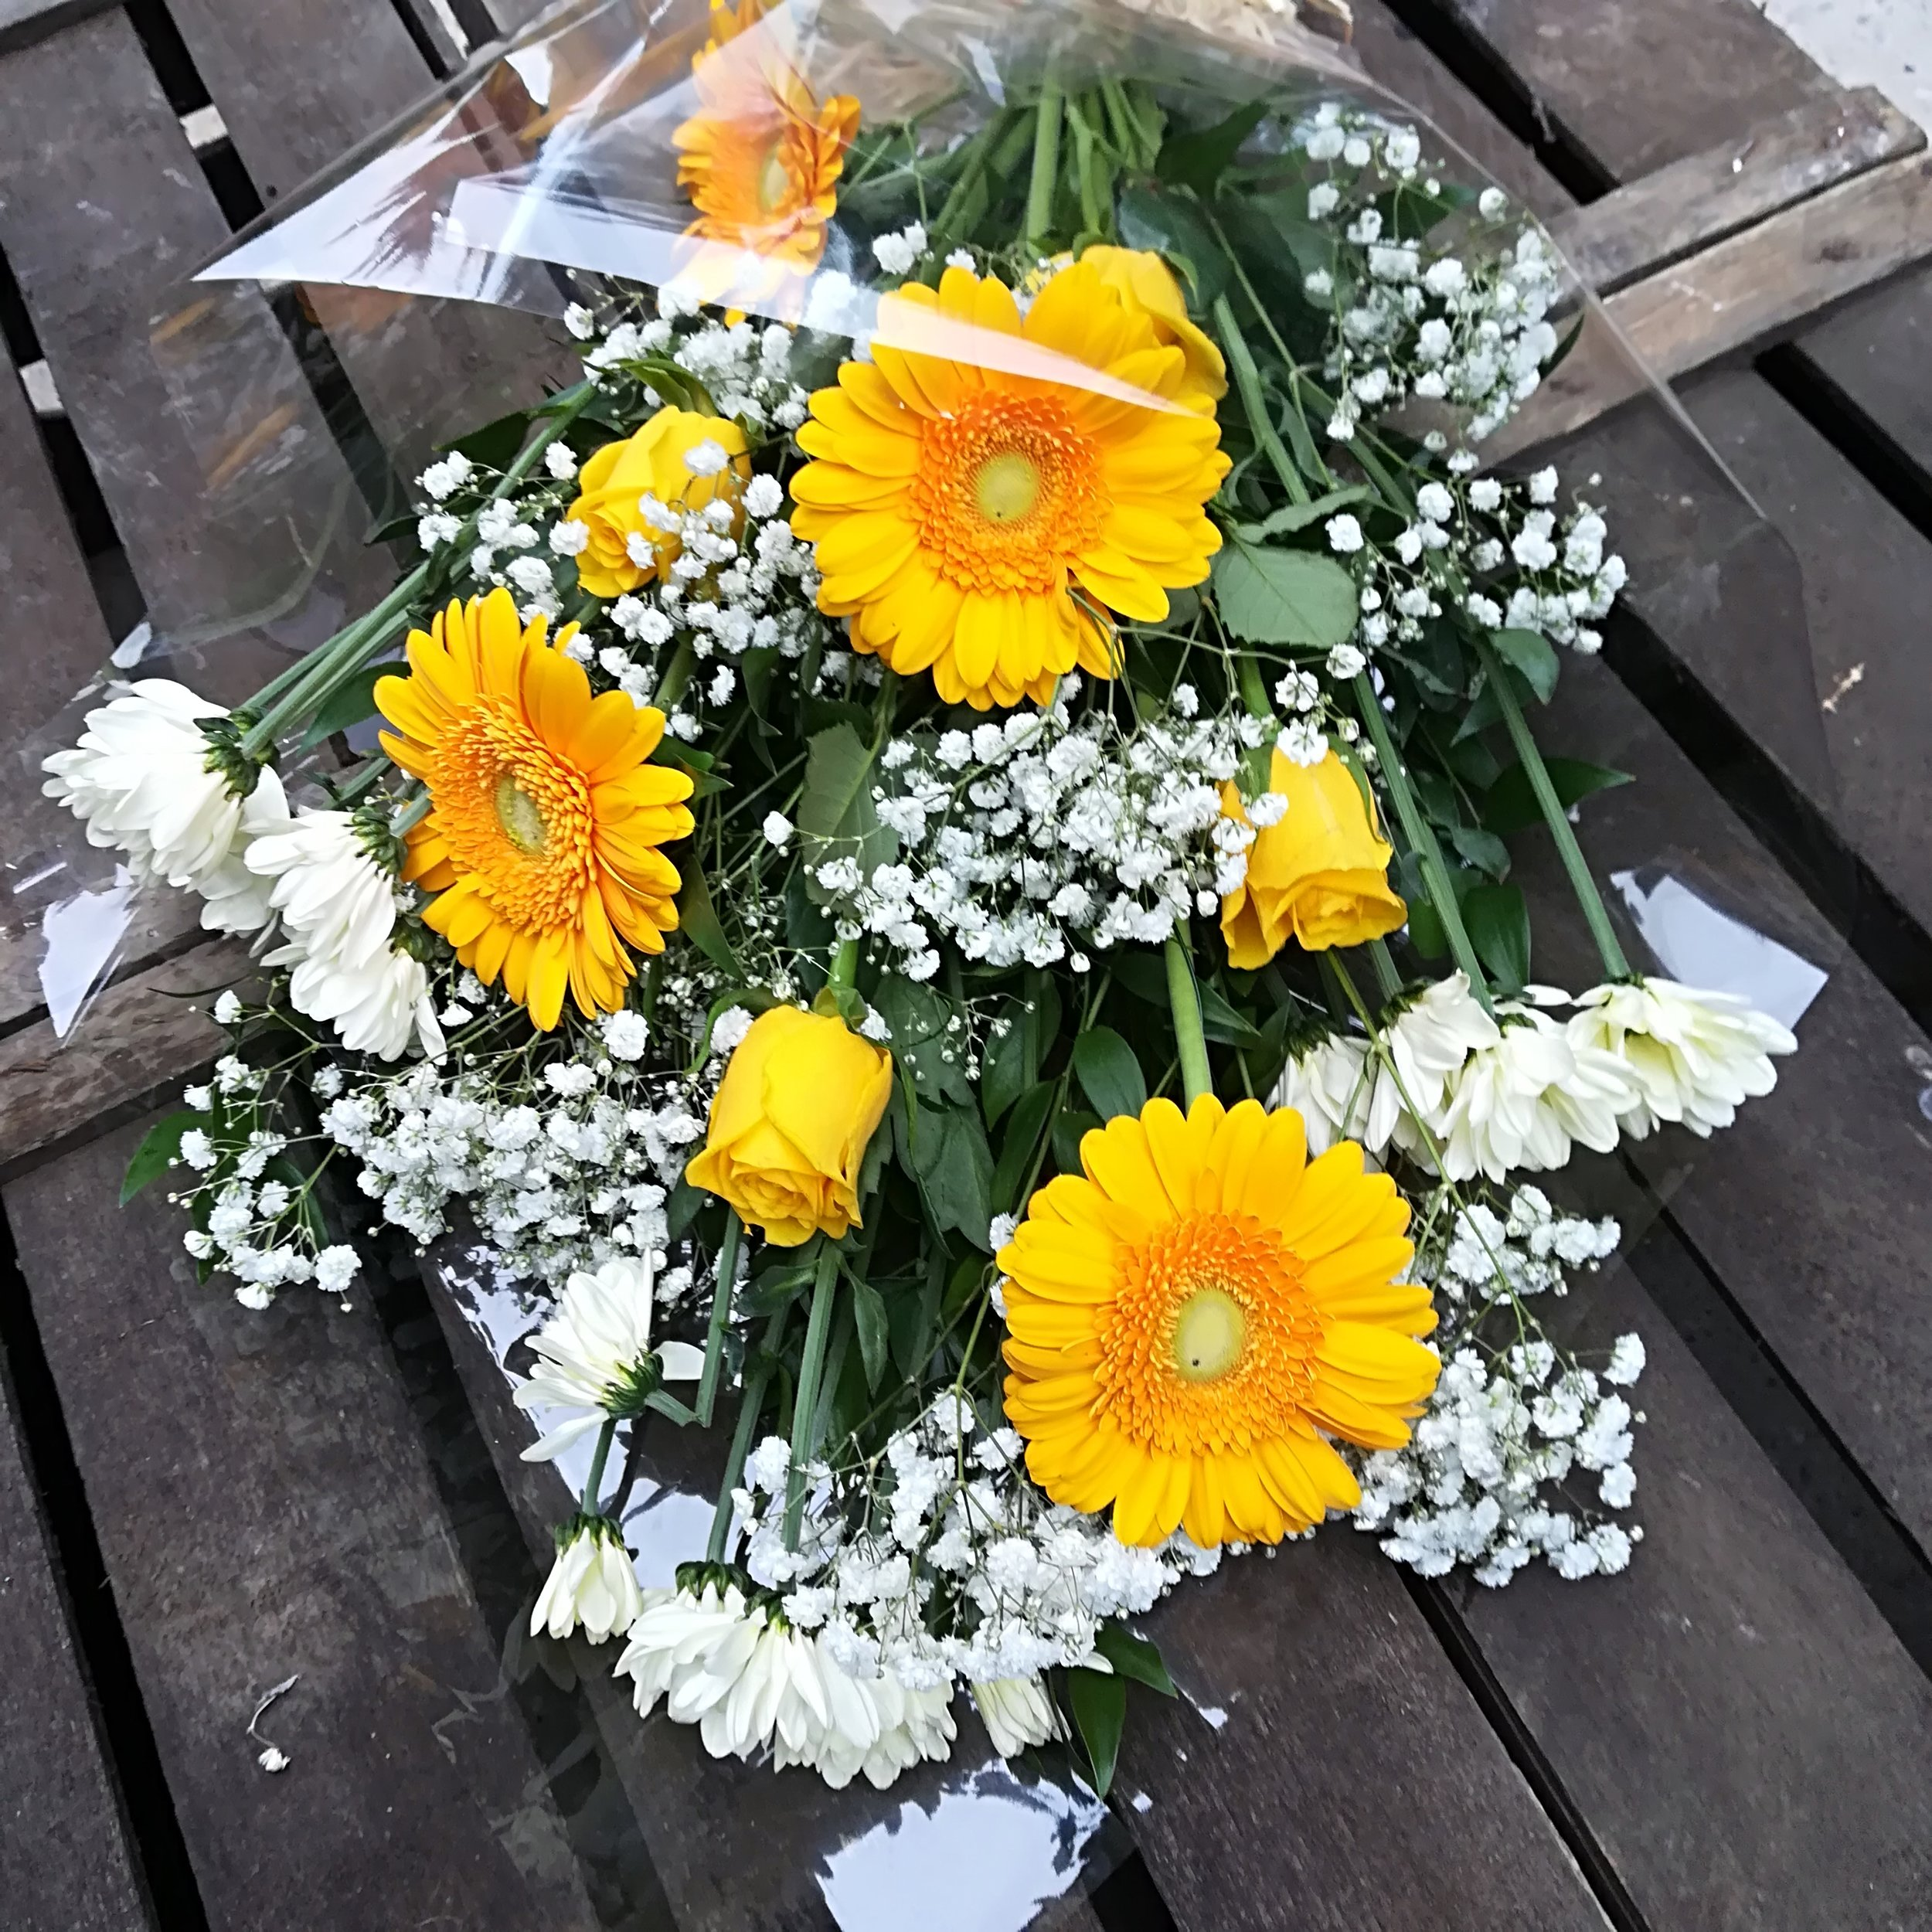 Funeral Flowers in Cellohpane - Yellow and White Inc. Gerberas.jpg